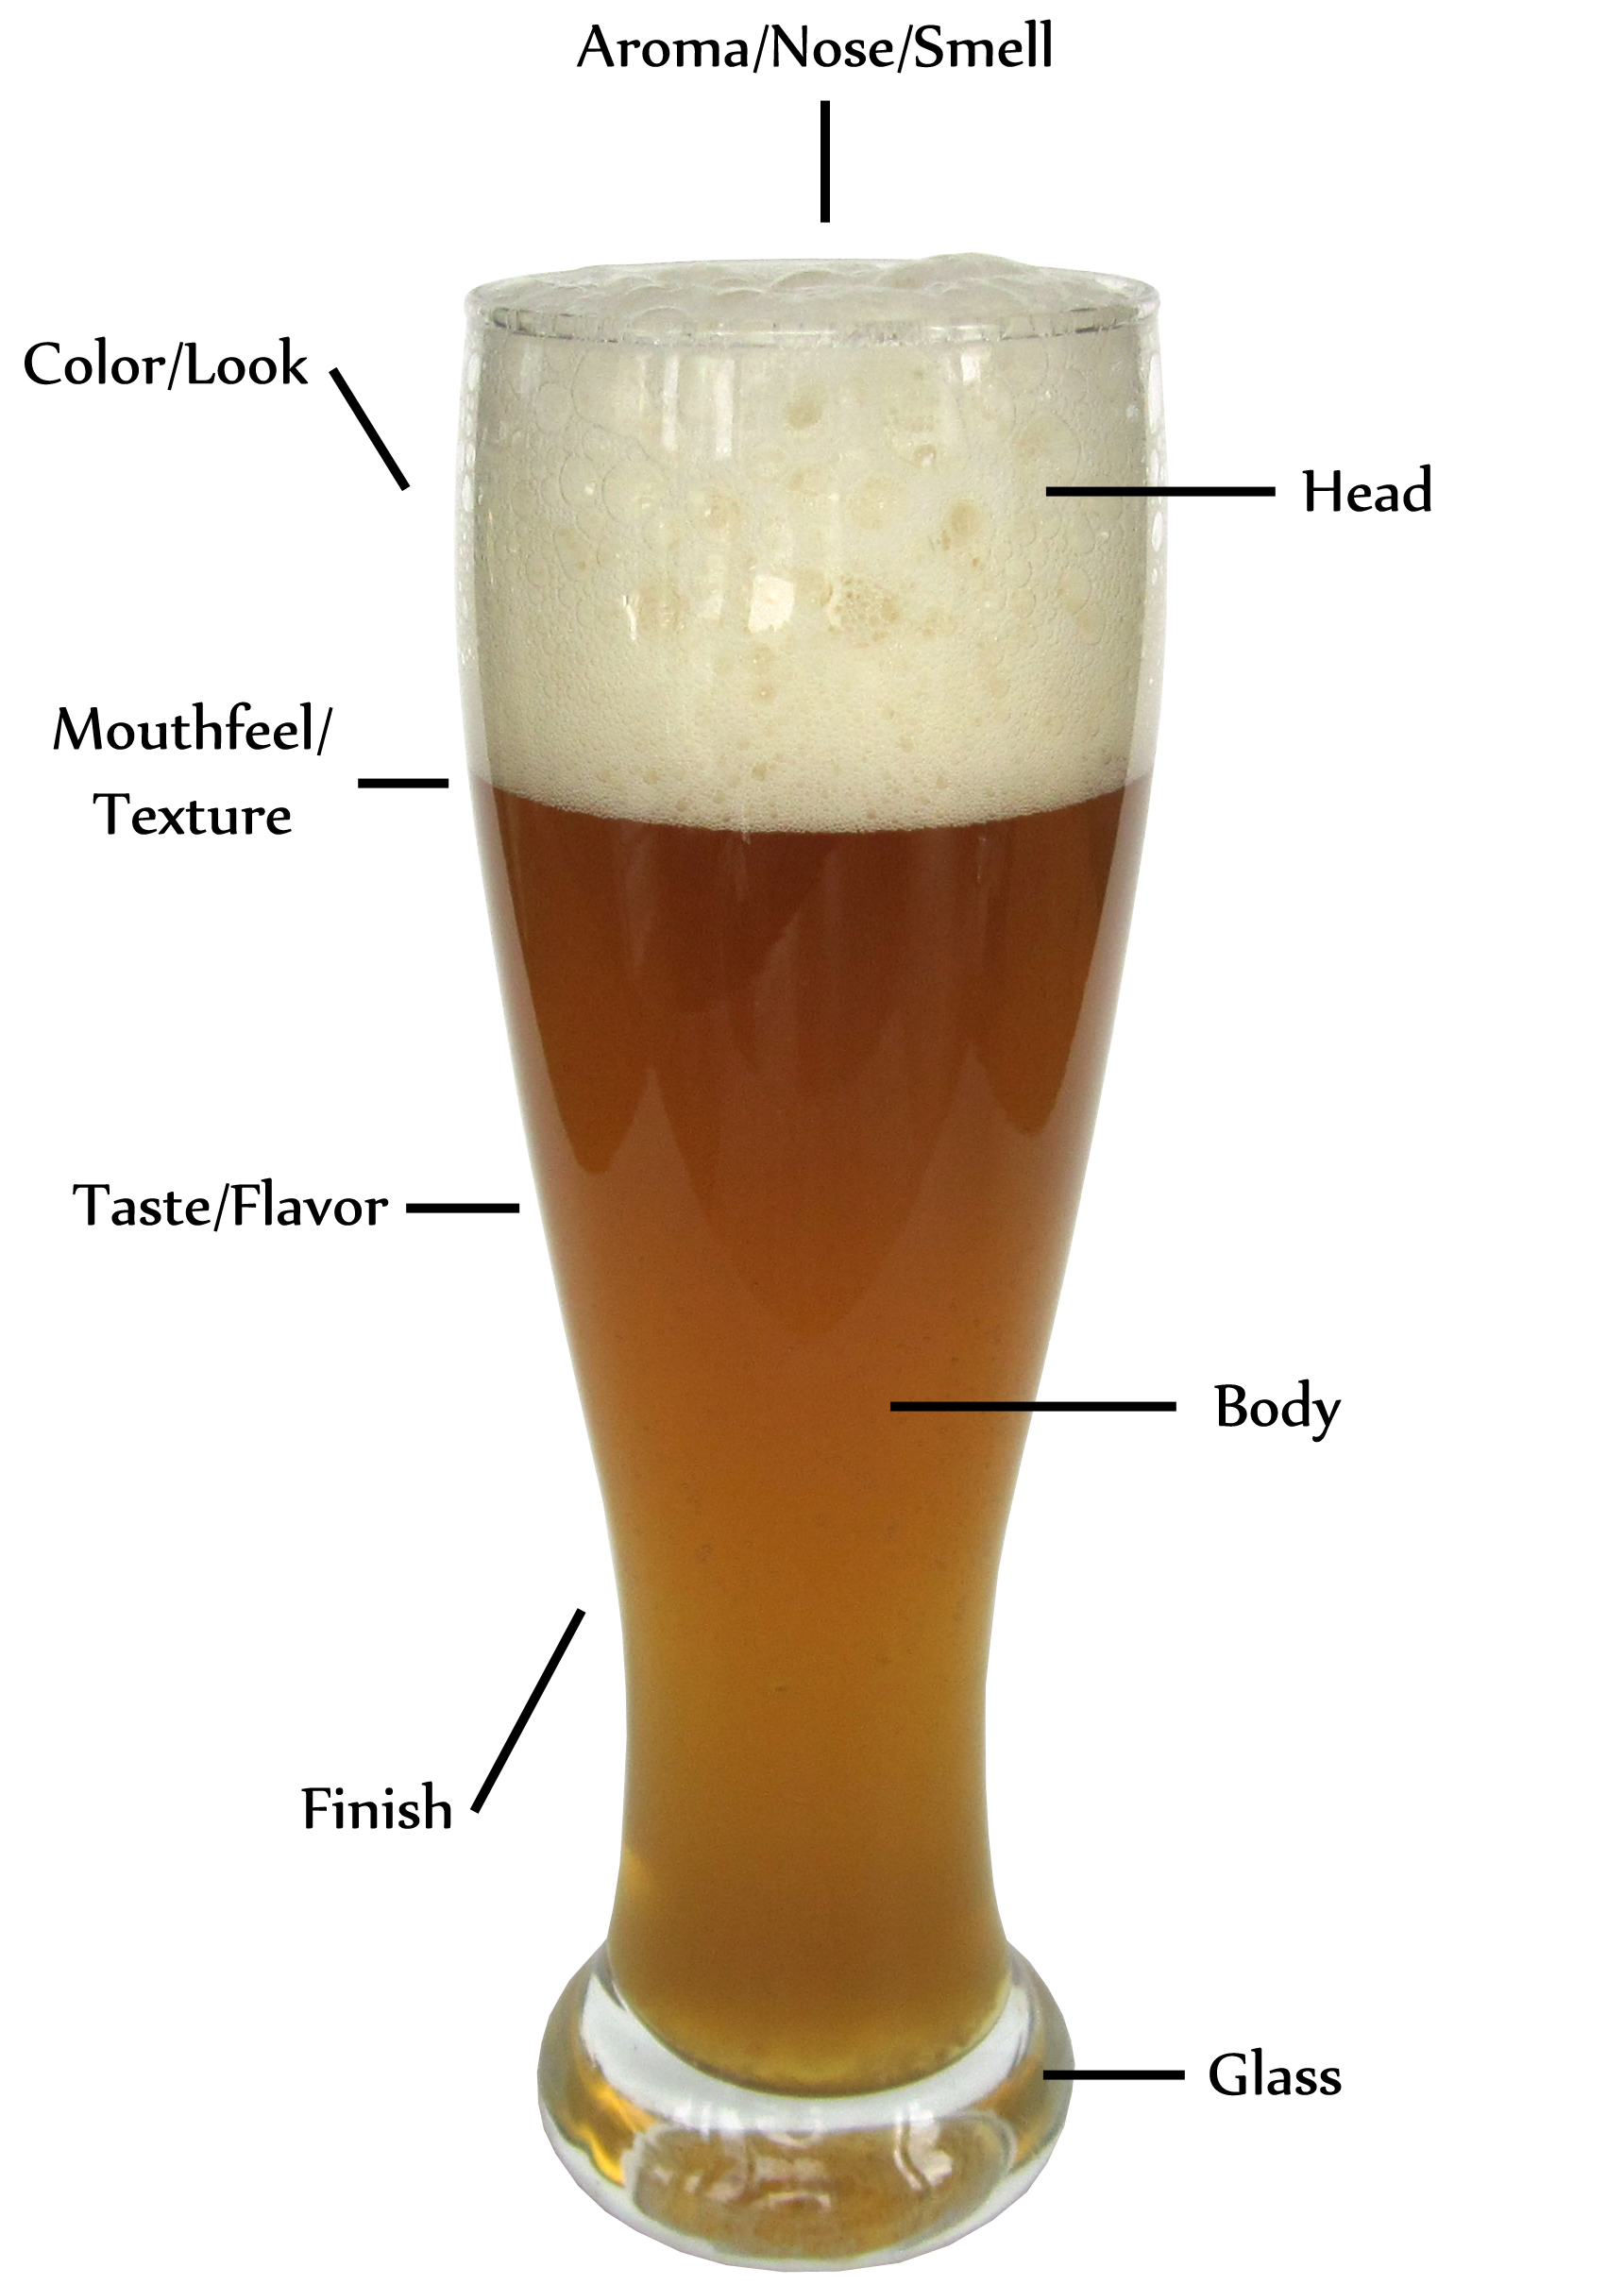 The Anatomy of a Beer | Definitive Ale